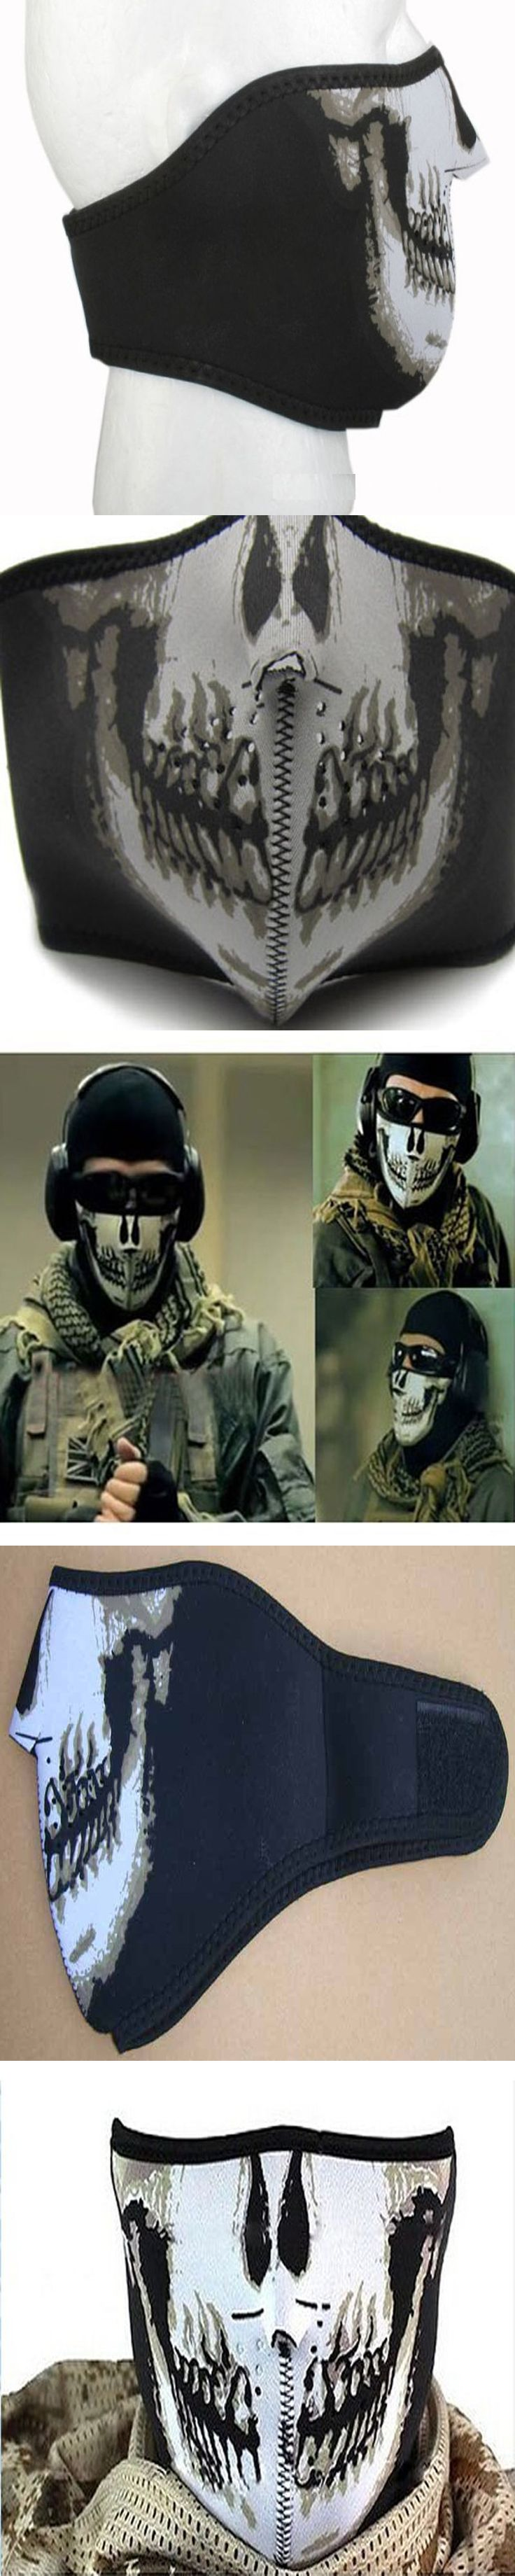 Useful Skull Half Face Mouth Mask Ski Snowboard Motorcycle Headwear Protection